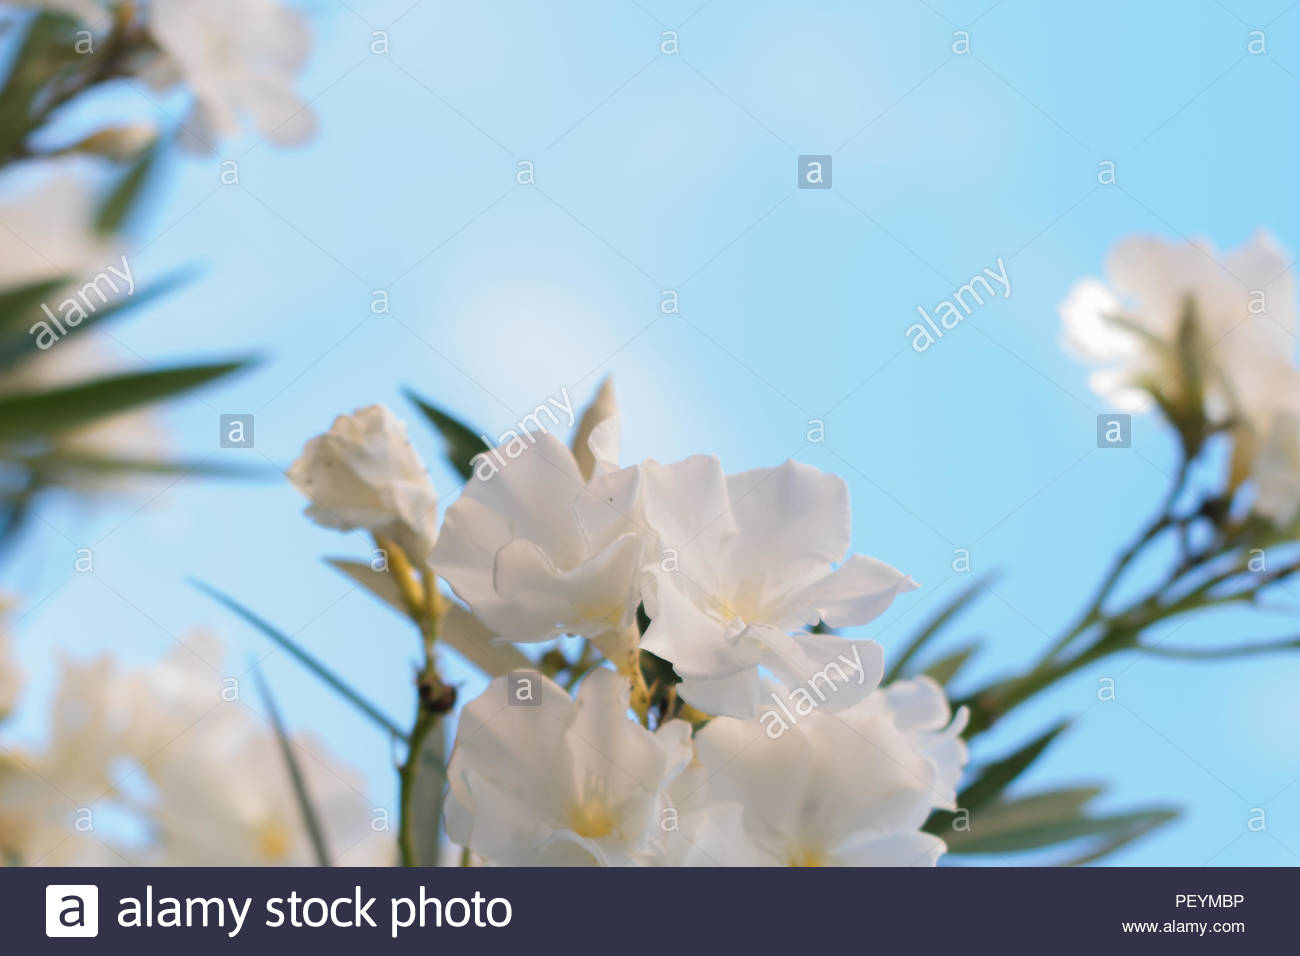 White Fresh Flowers On Blue Background For Text Stock Photo